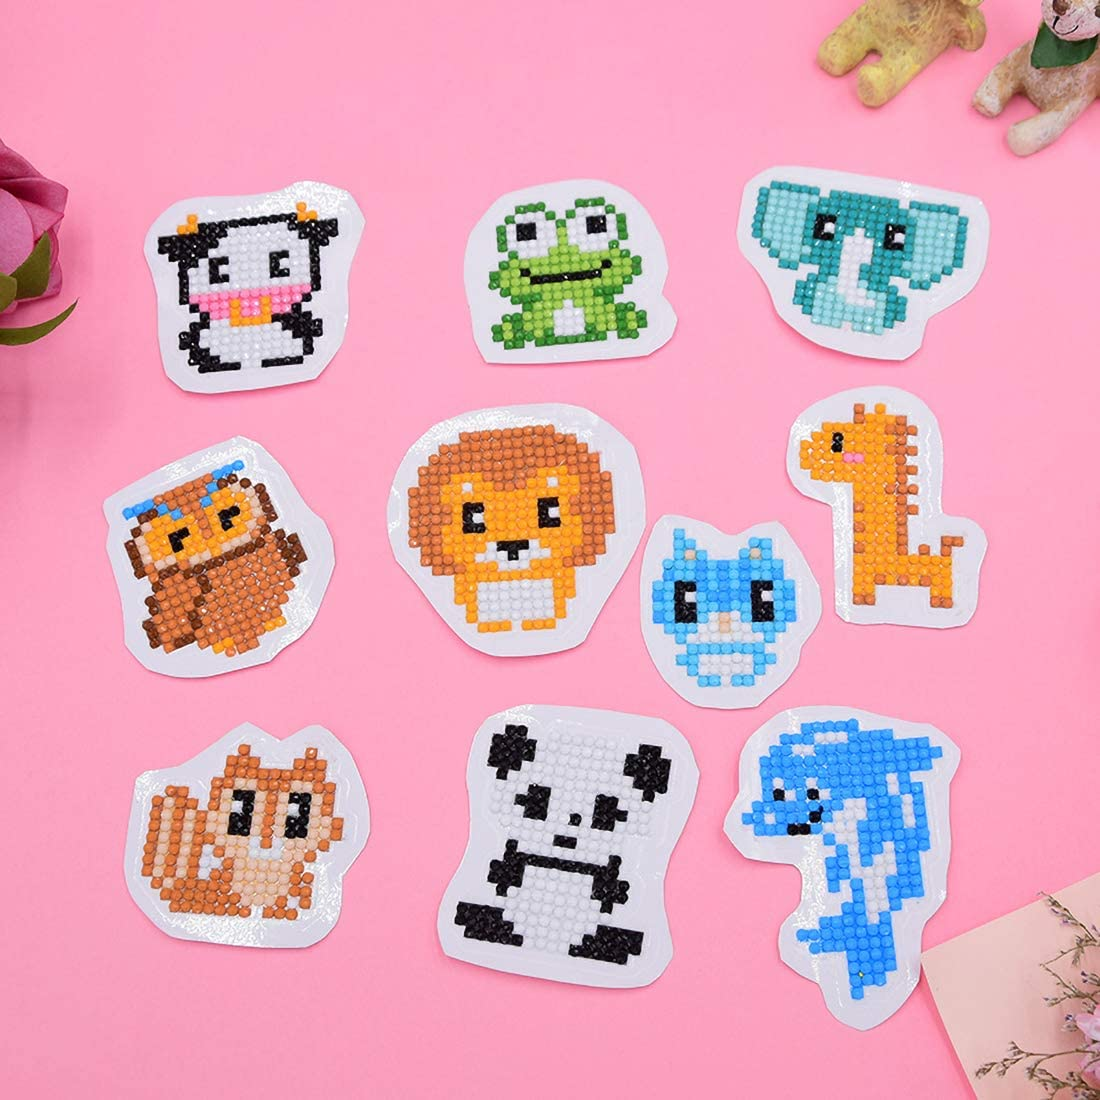 5D DIY Diamond Painting Stickers Animals /& Butterfly Paint by Numbers Diamonds Stickers Kits for Kids Adult Beginners 19 Pcs Funny /& Colorful Stickers